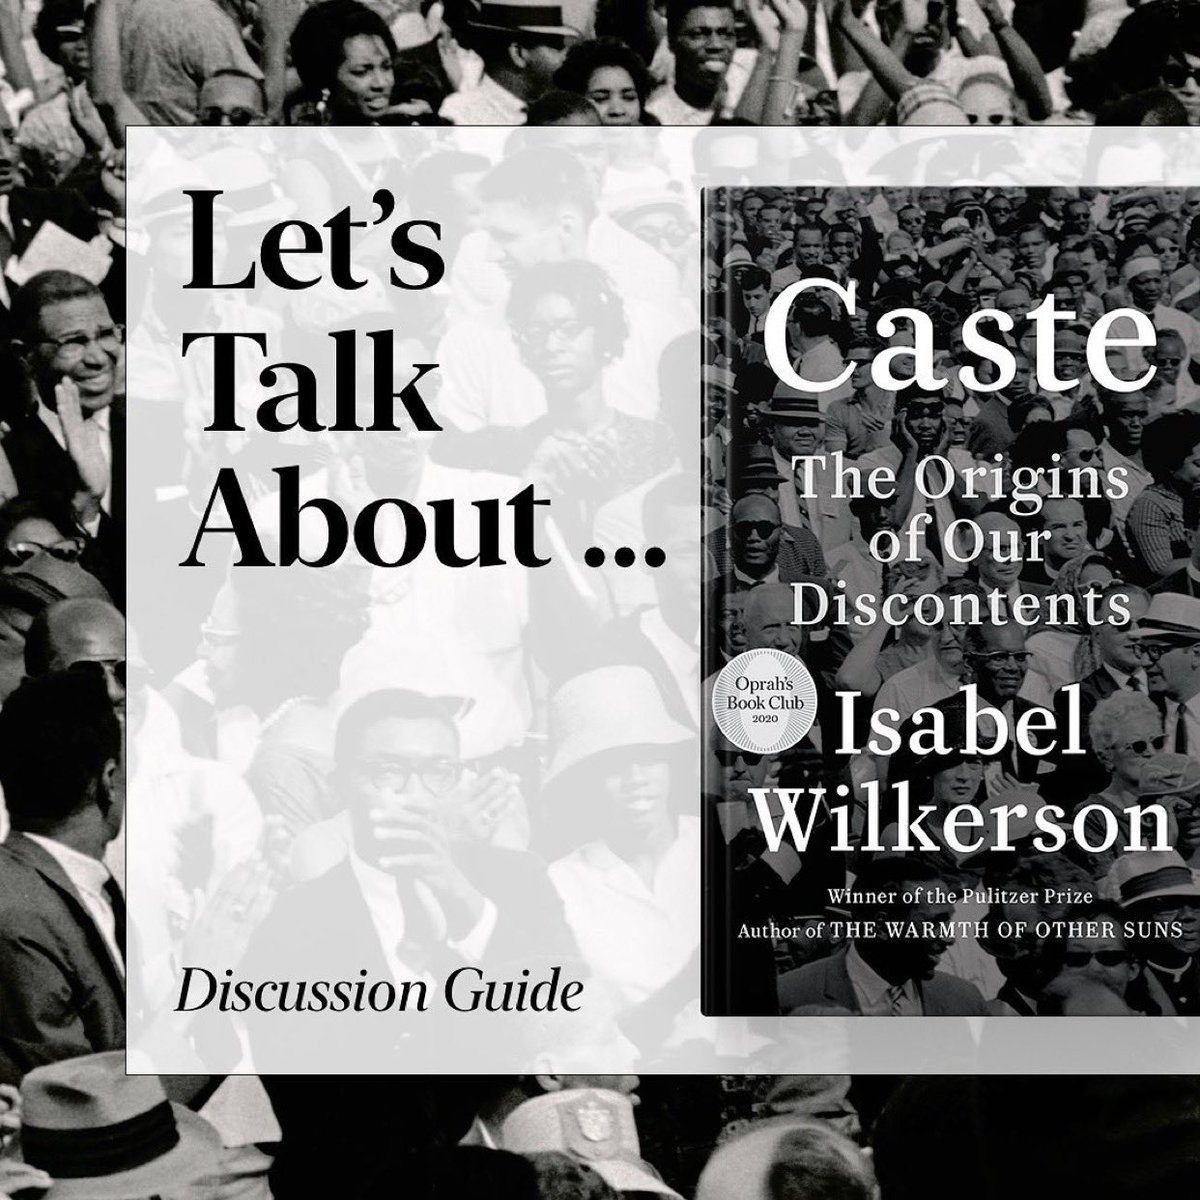 .@IsabelWilkerson, Pulitzer Prize winning novelist, wrote this incredible book that we all must read! https://t.co/UkKvJlVQxQ